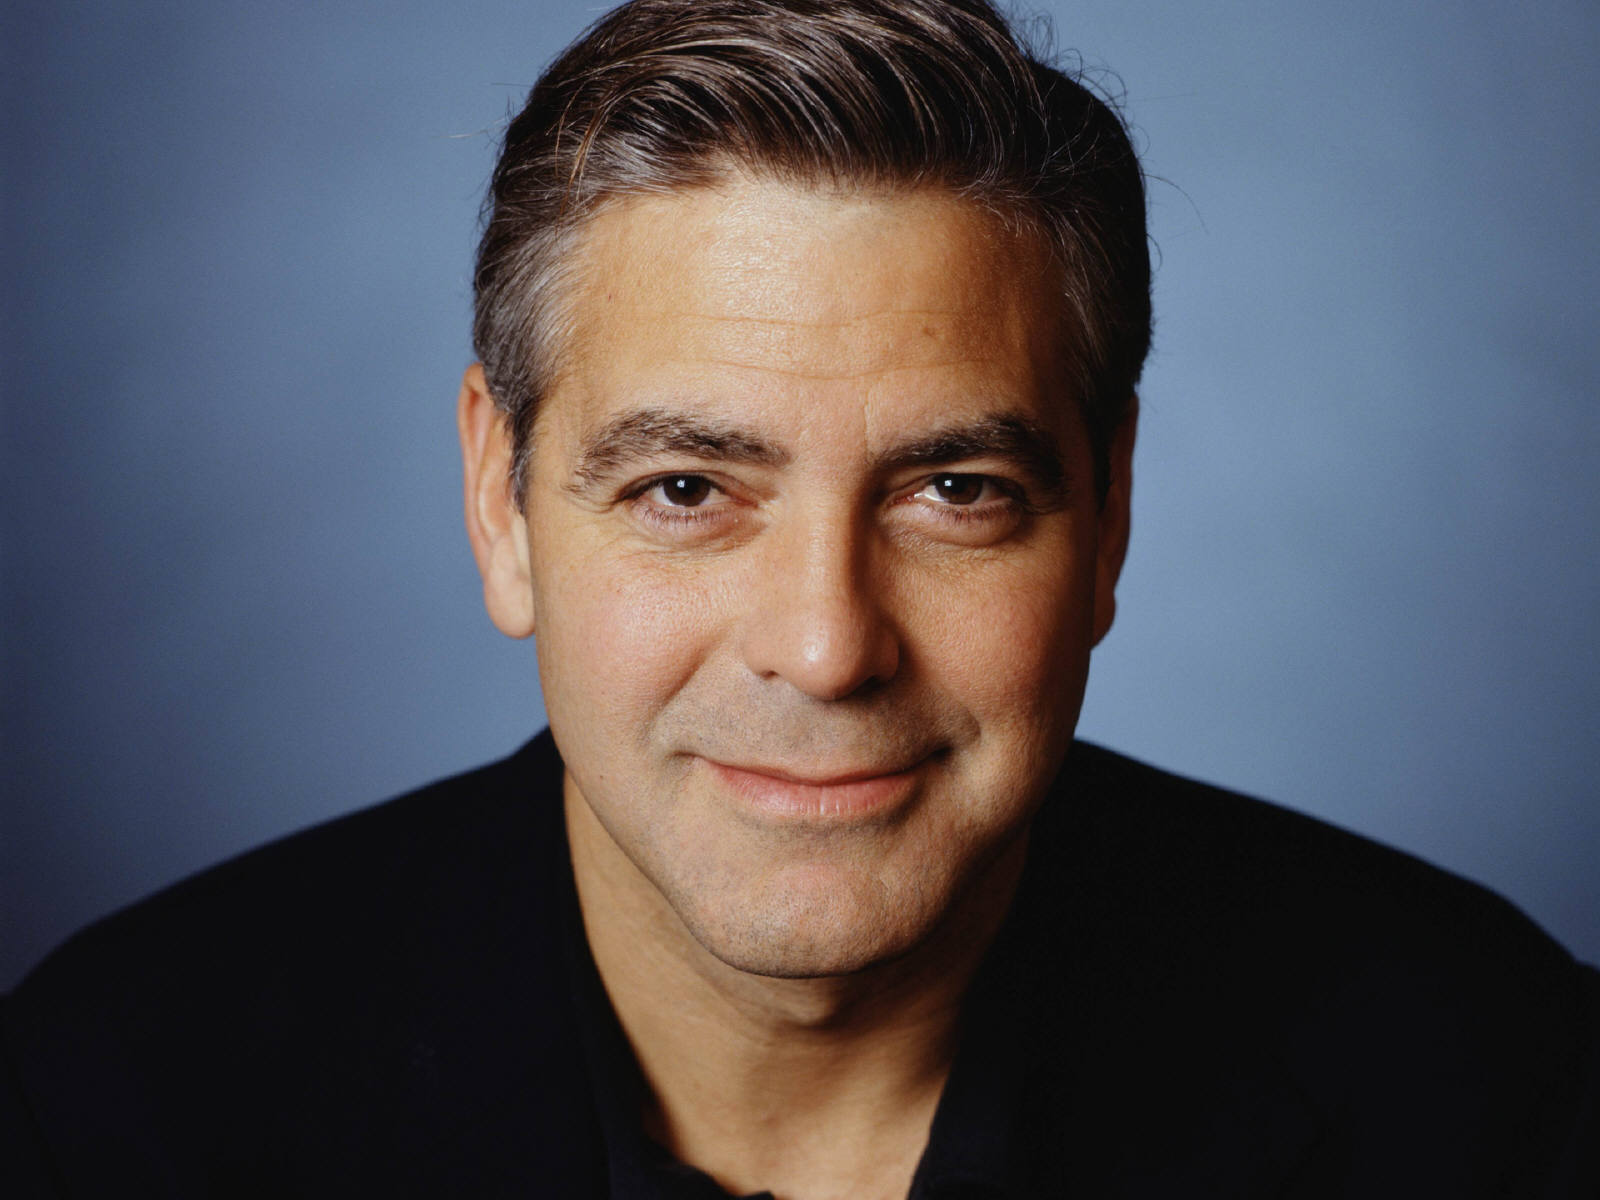 George Clooney Computer Background 1064 1600x1200 px 1600x1200